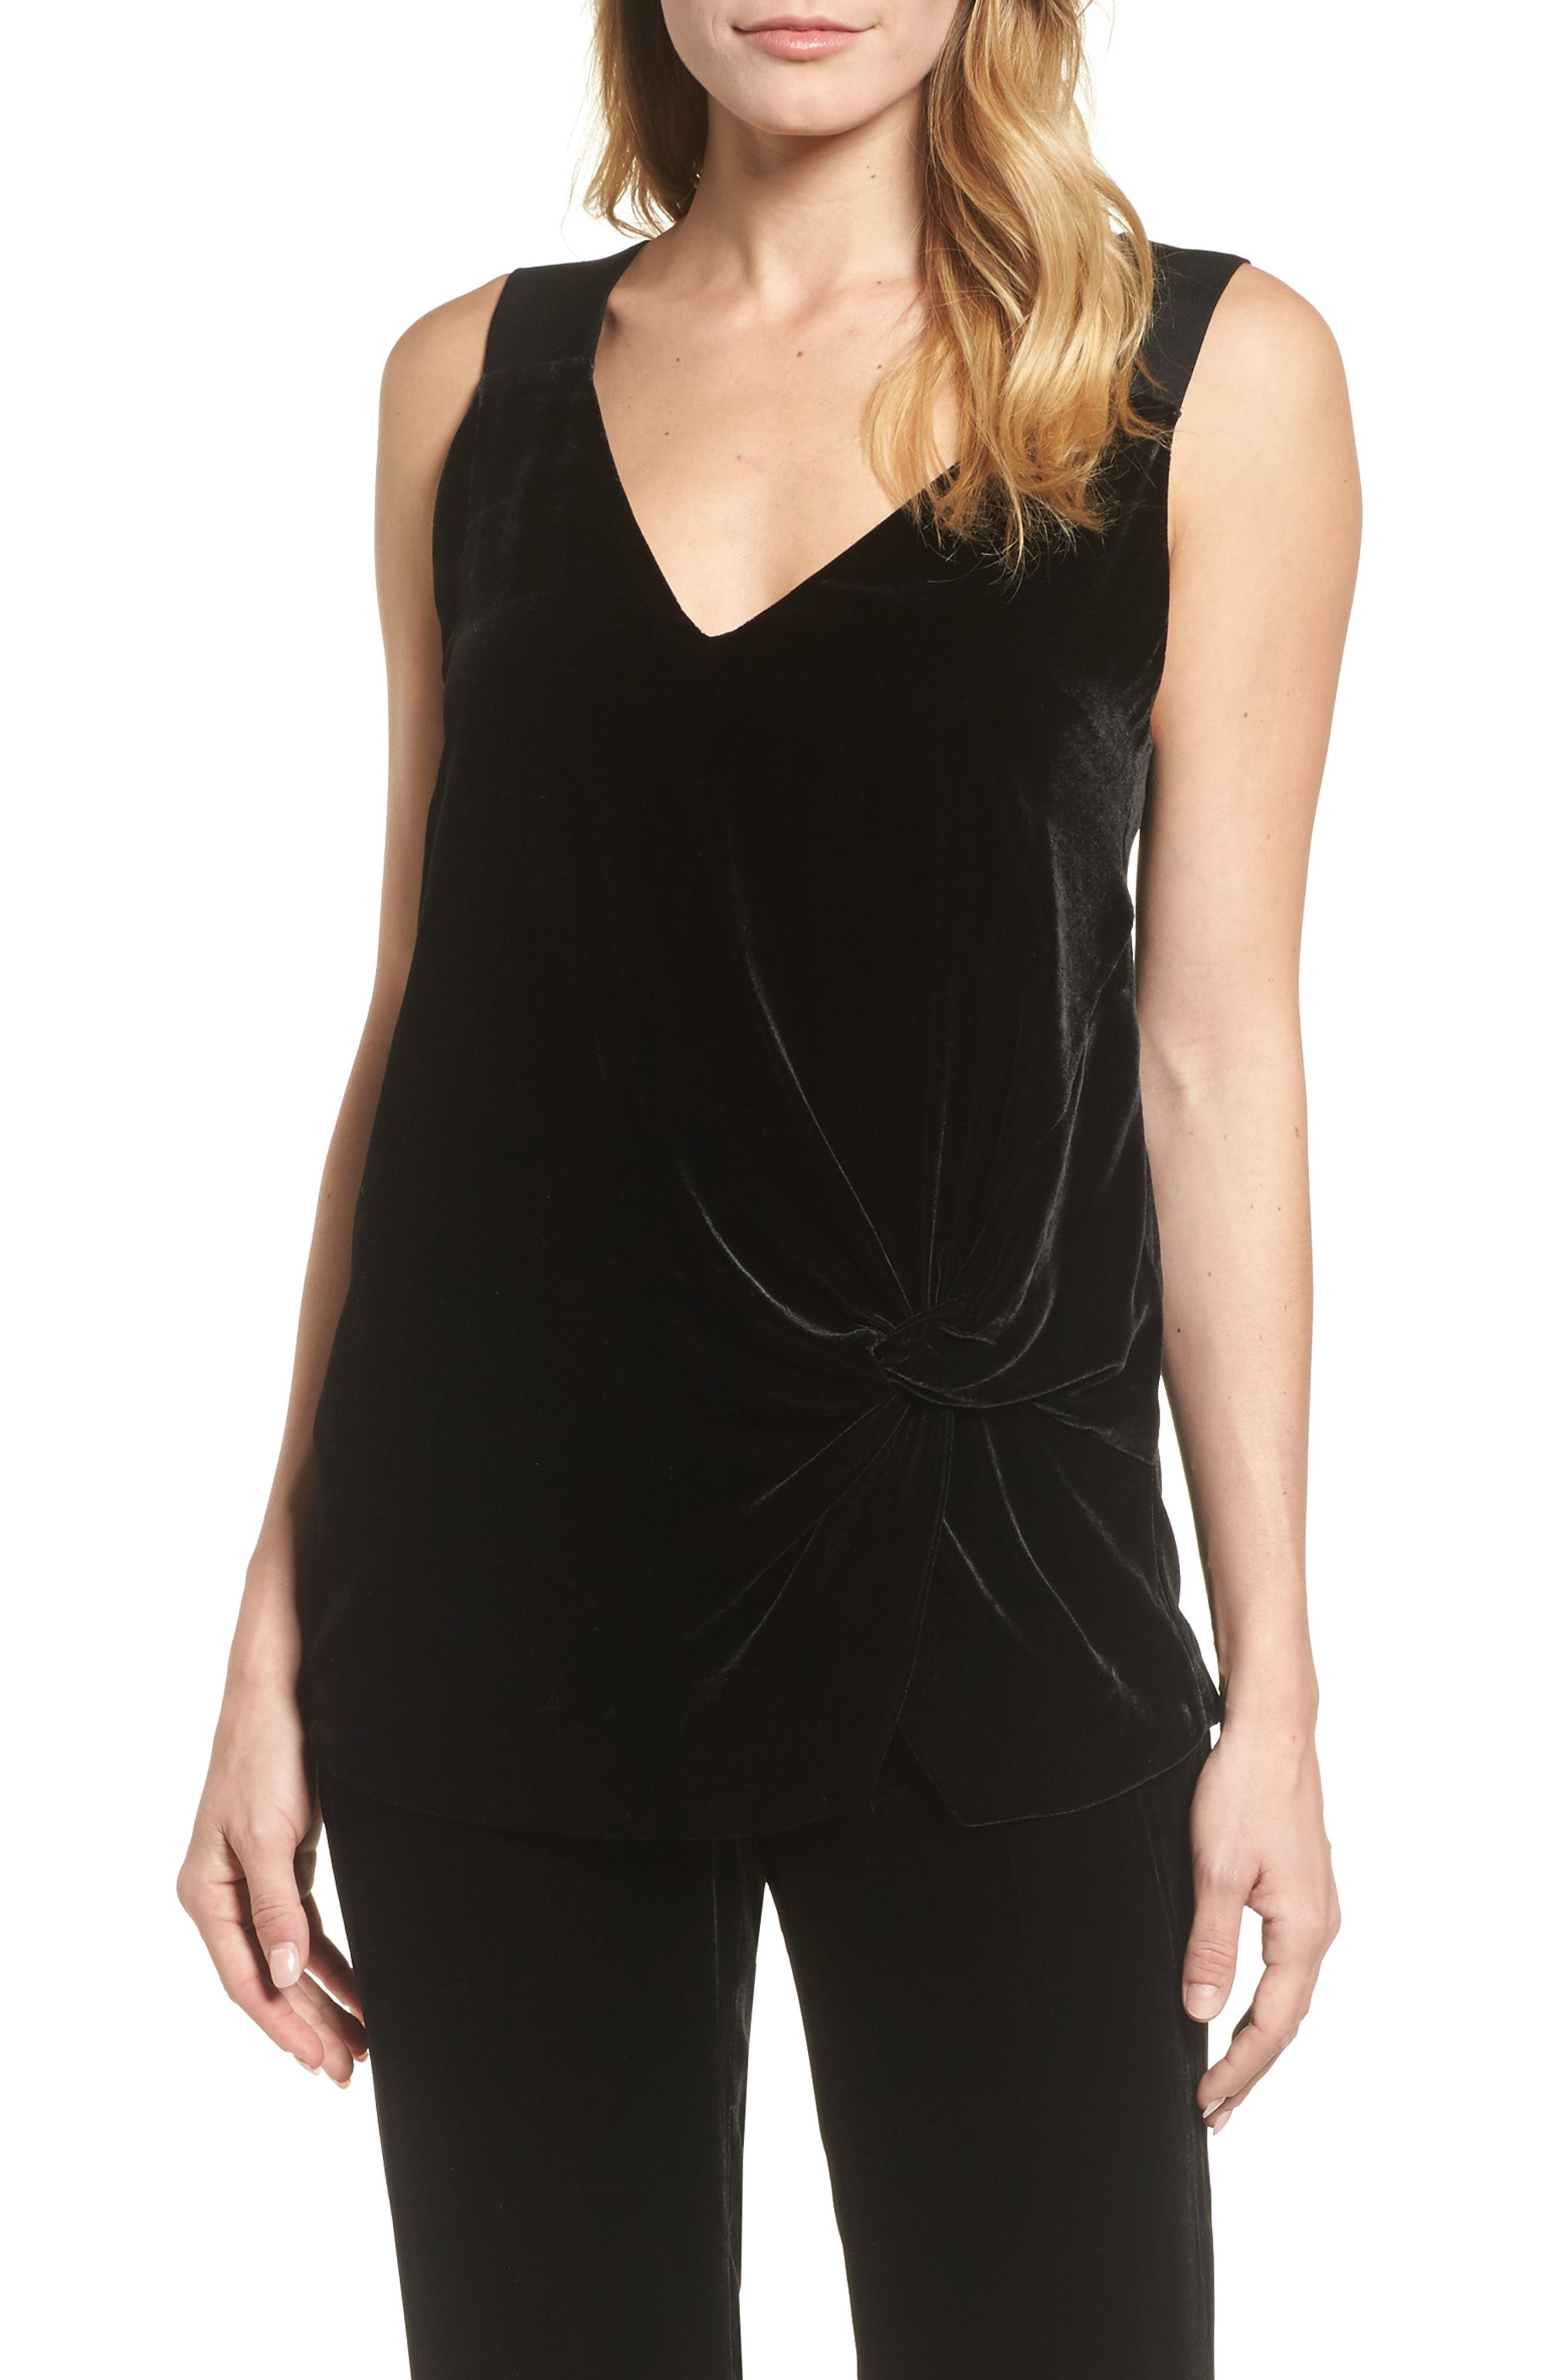 Ikaria Velvet Top,                         Main,                         color, Black